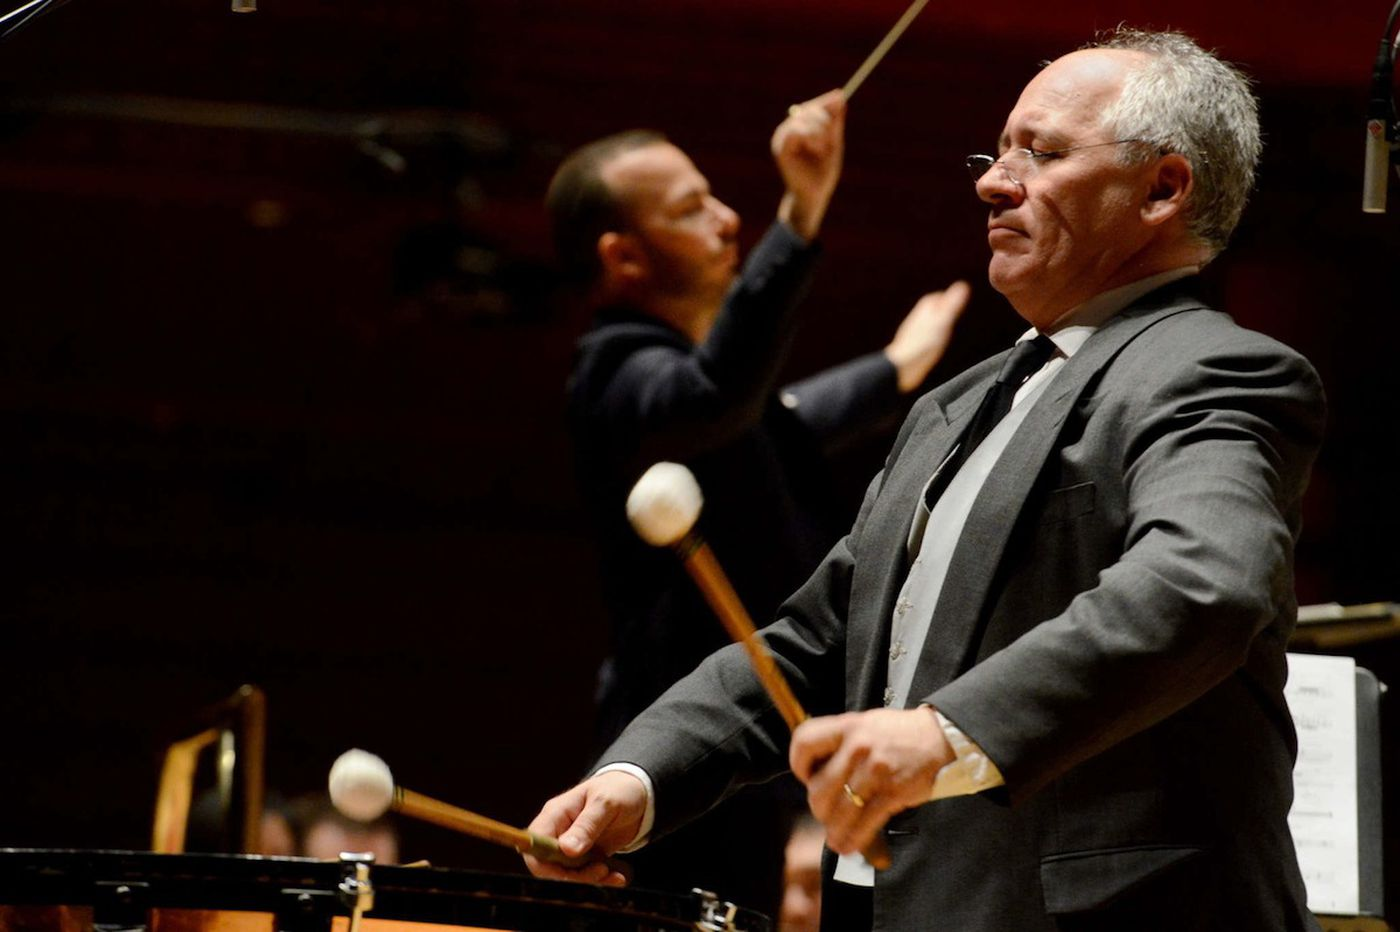 Philly Orchestra performs 2 new concertos - unusual but engaging